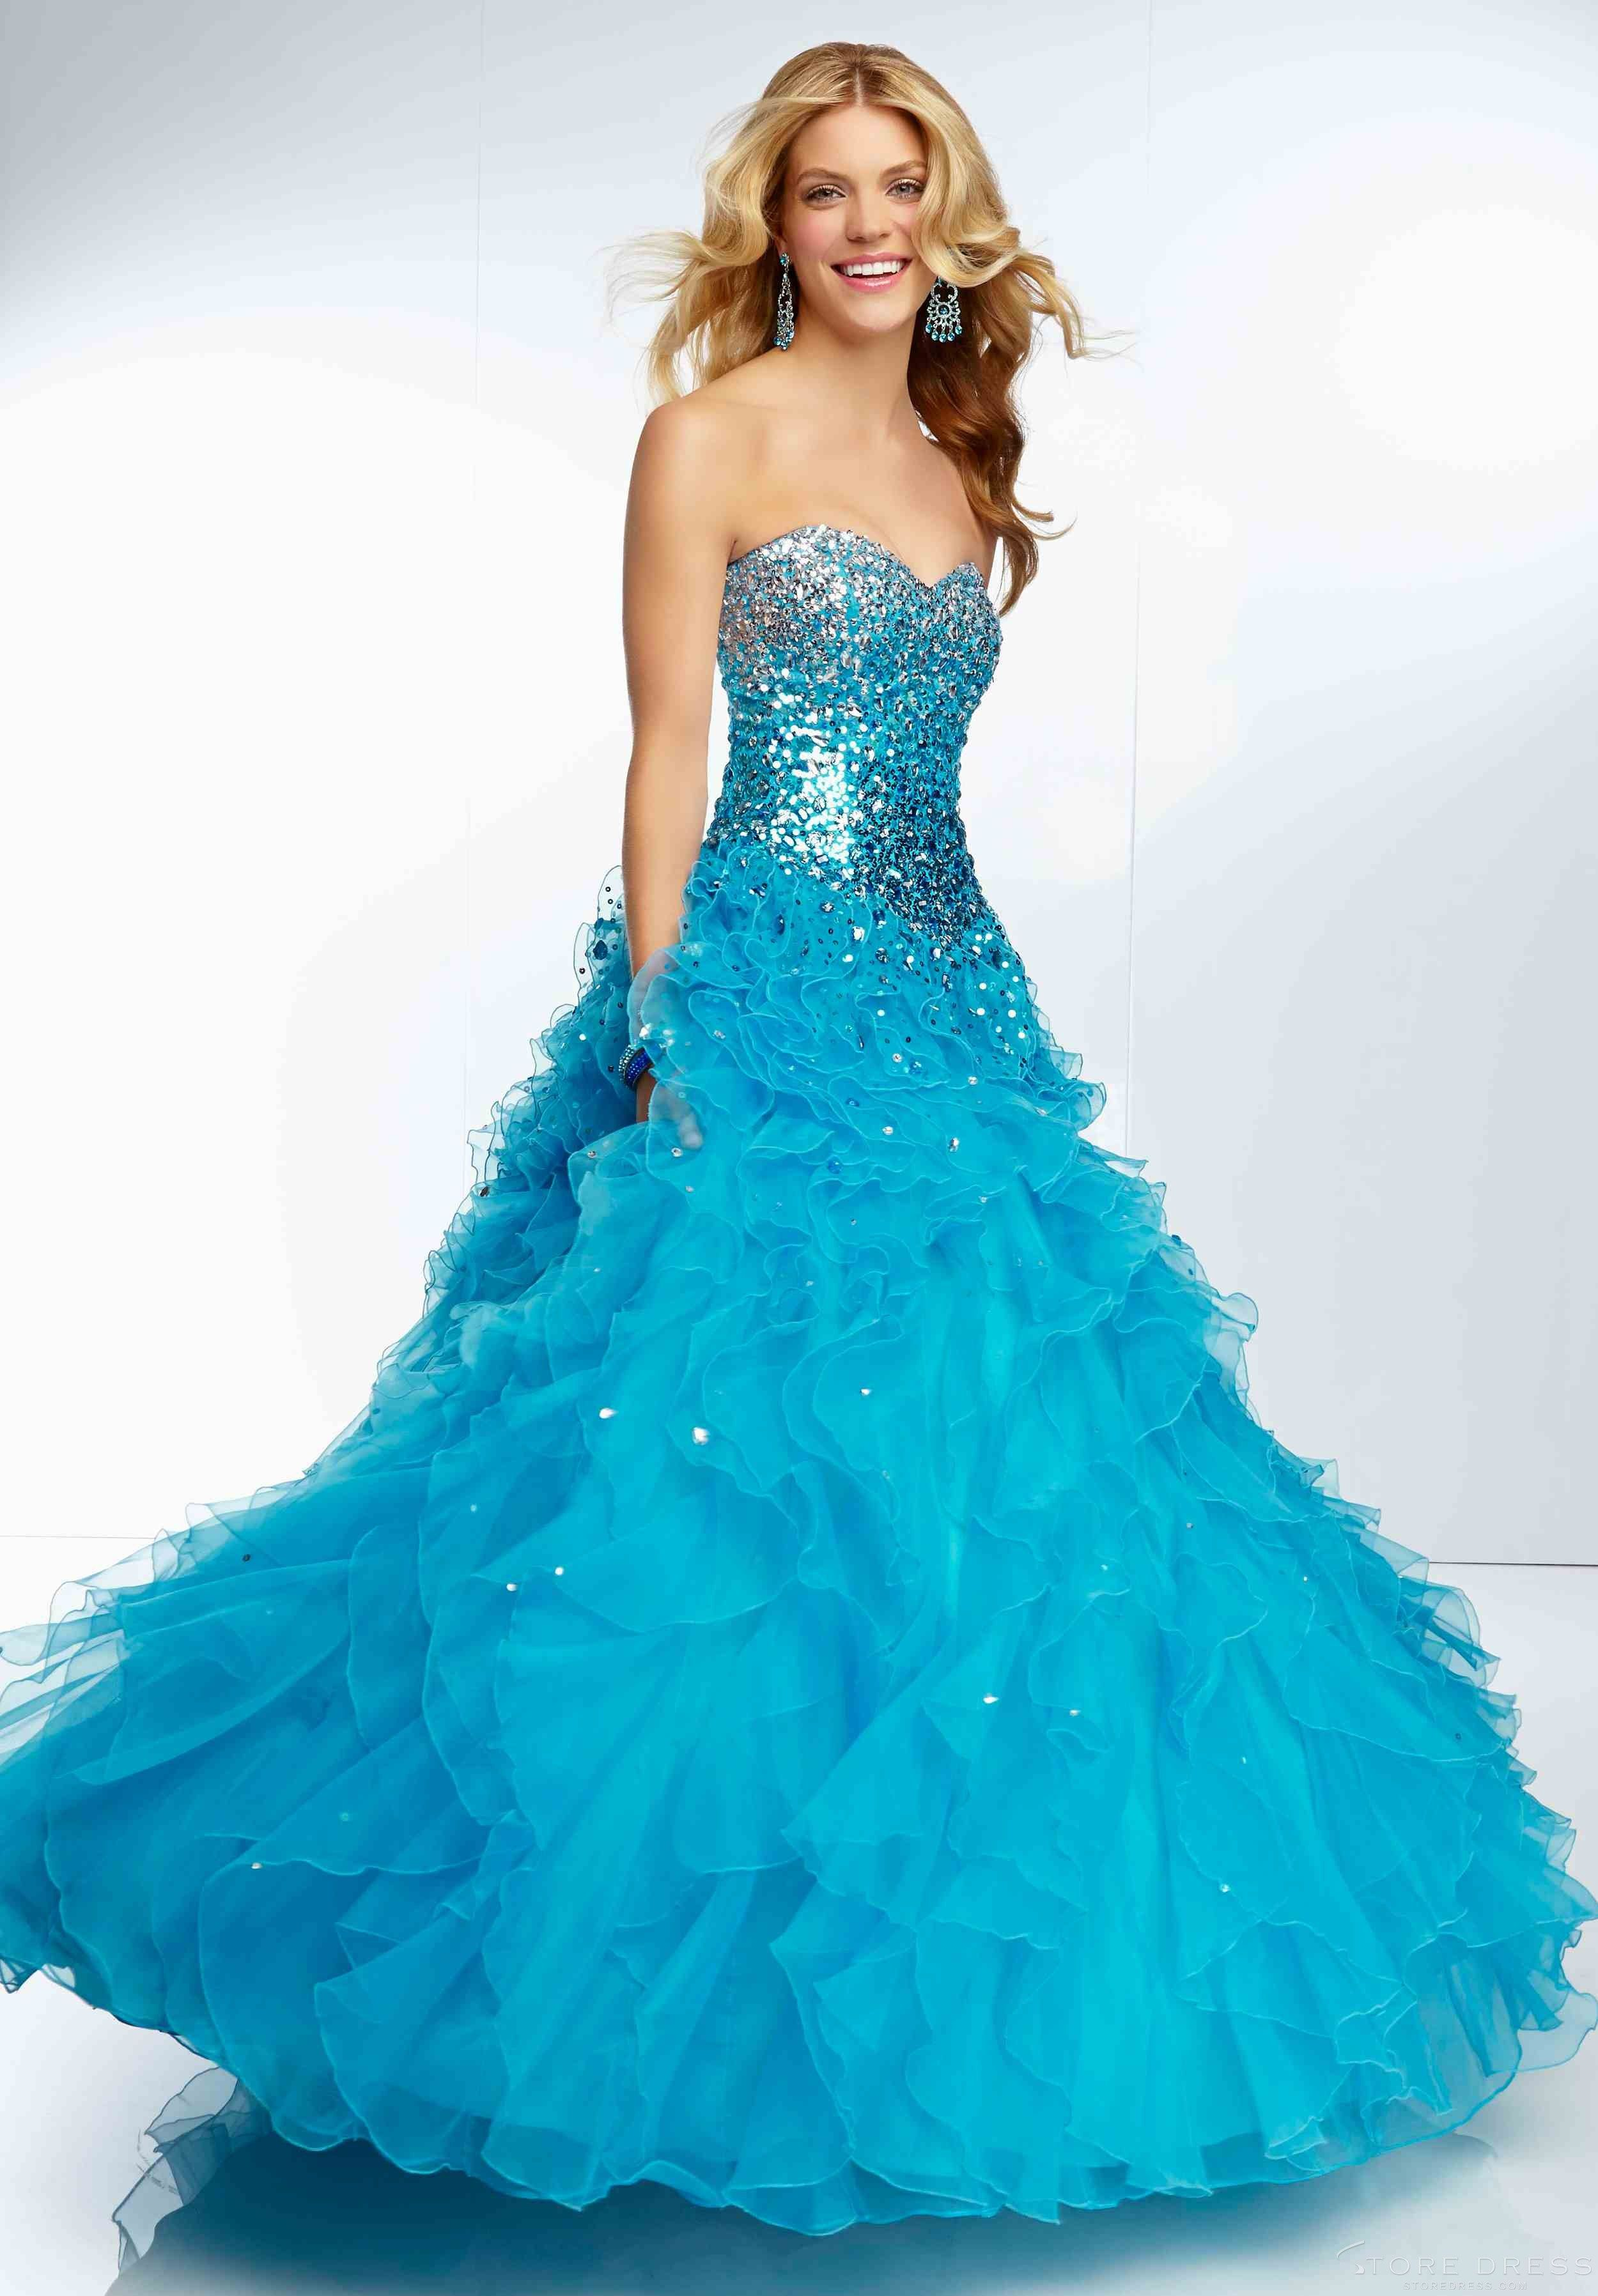 Top Fashion Ball Gown Sweetheart Floor-length 2014 New Style Ball Gown Dress at Promgirlshop.com